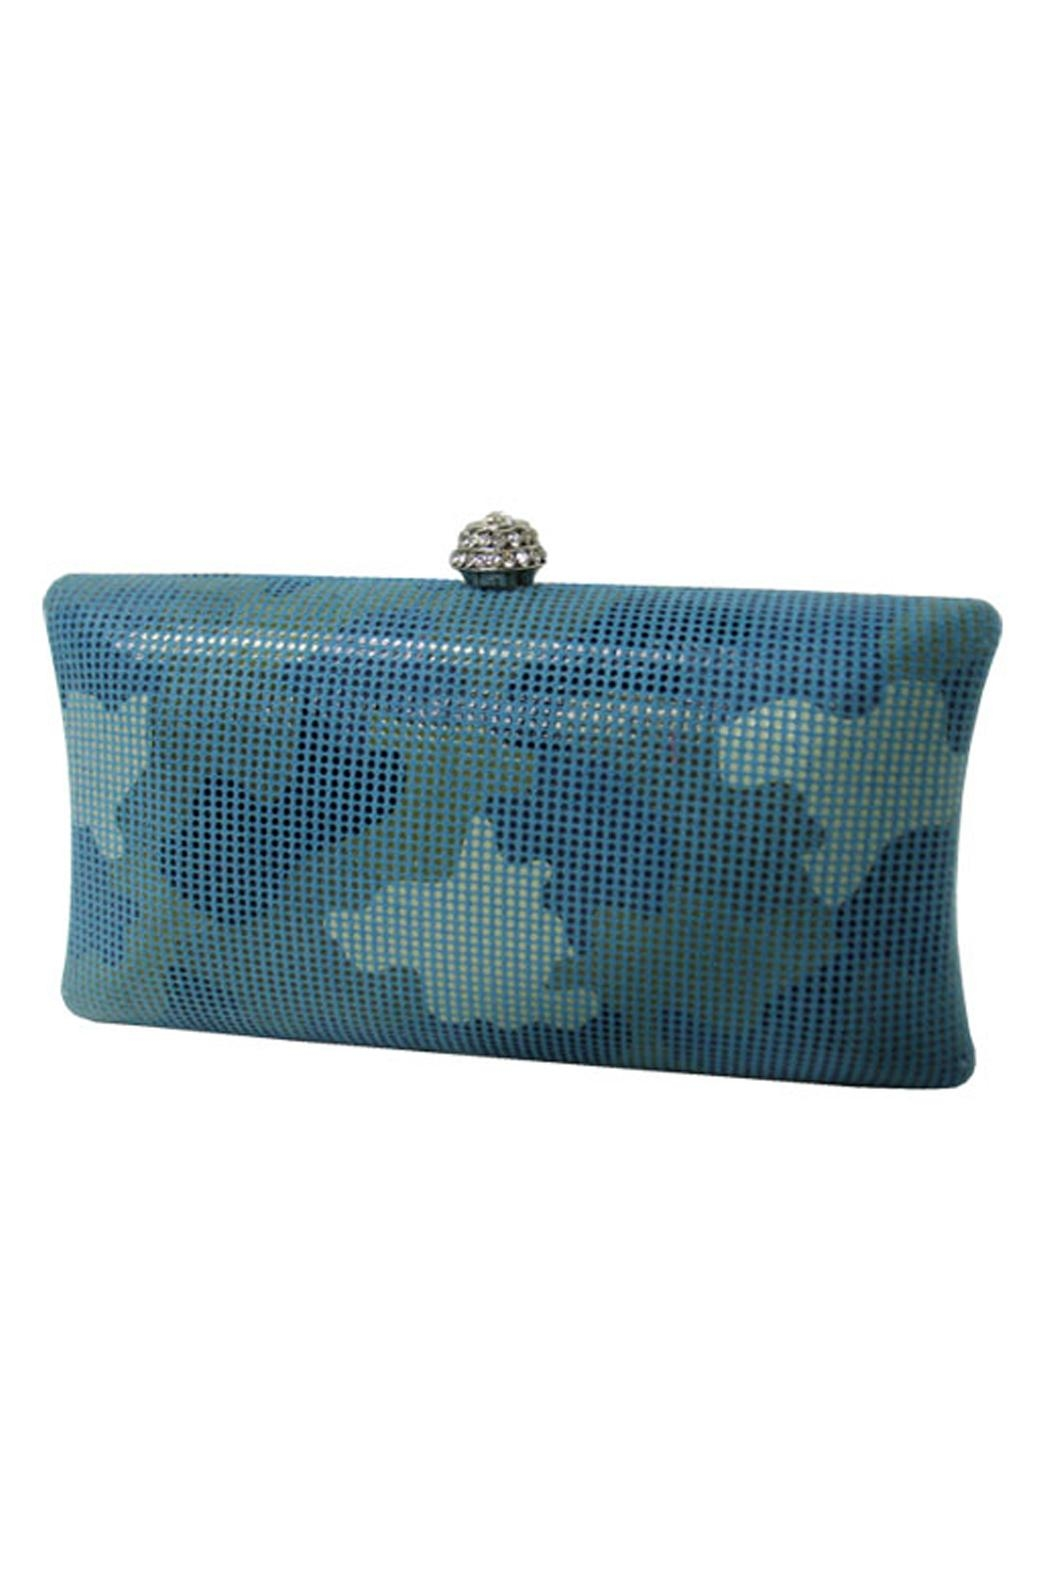 Wild Lilies Jewelry  Blue Camouflage Clutch - Main Image